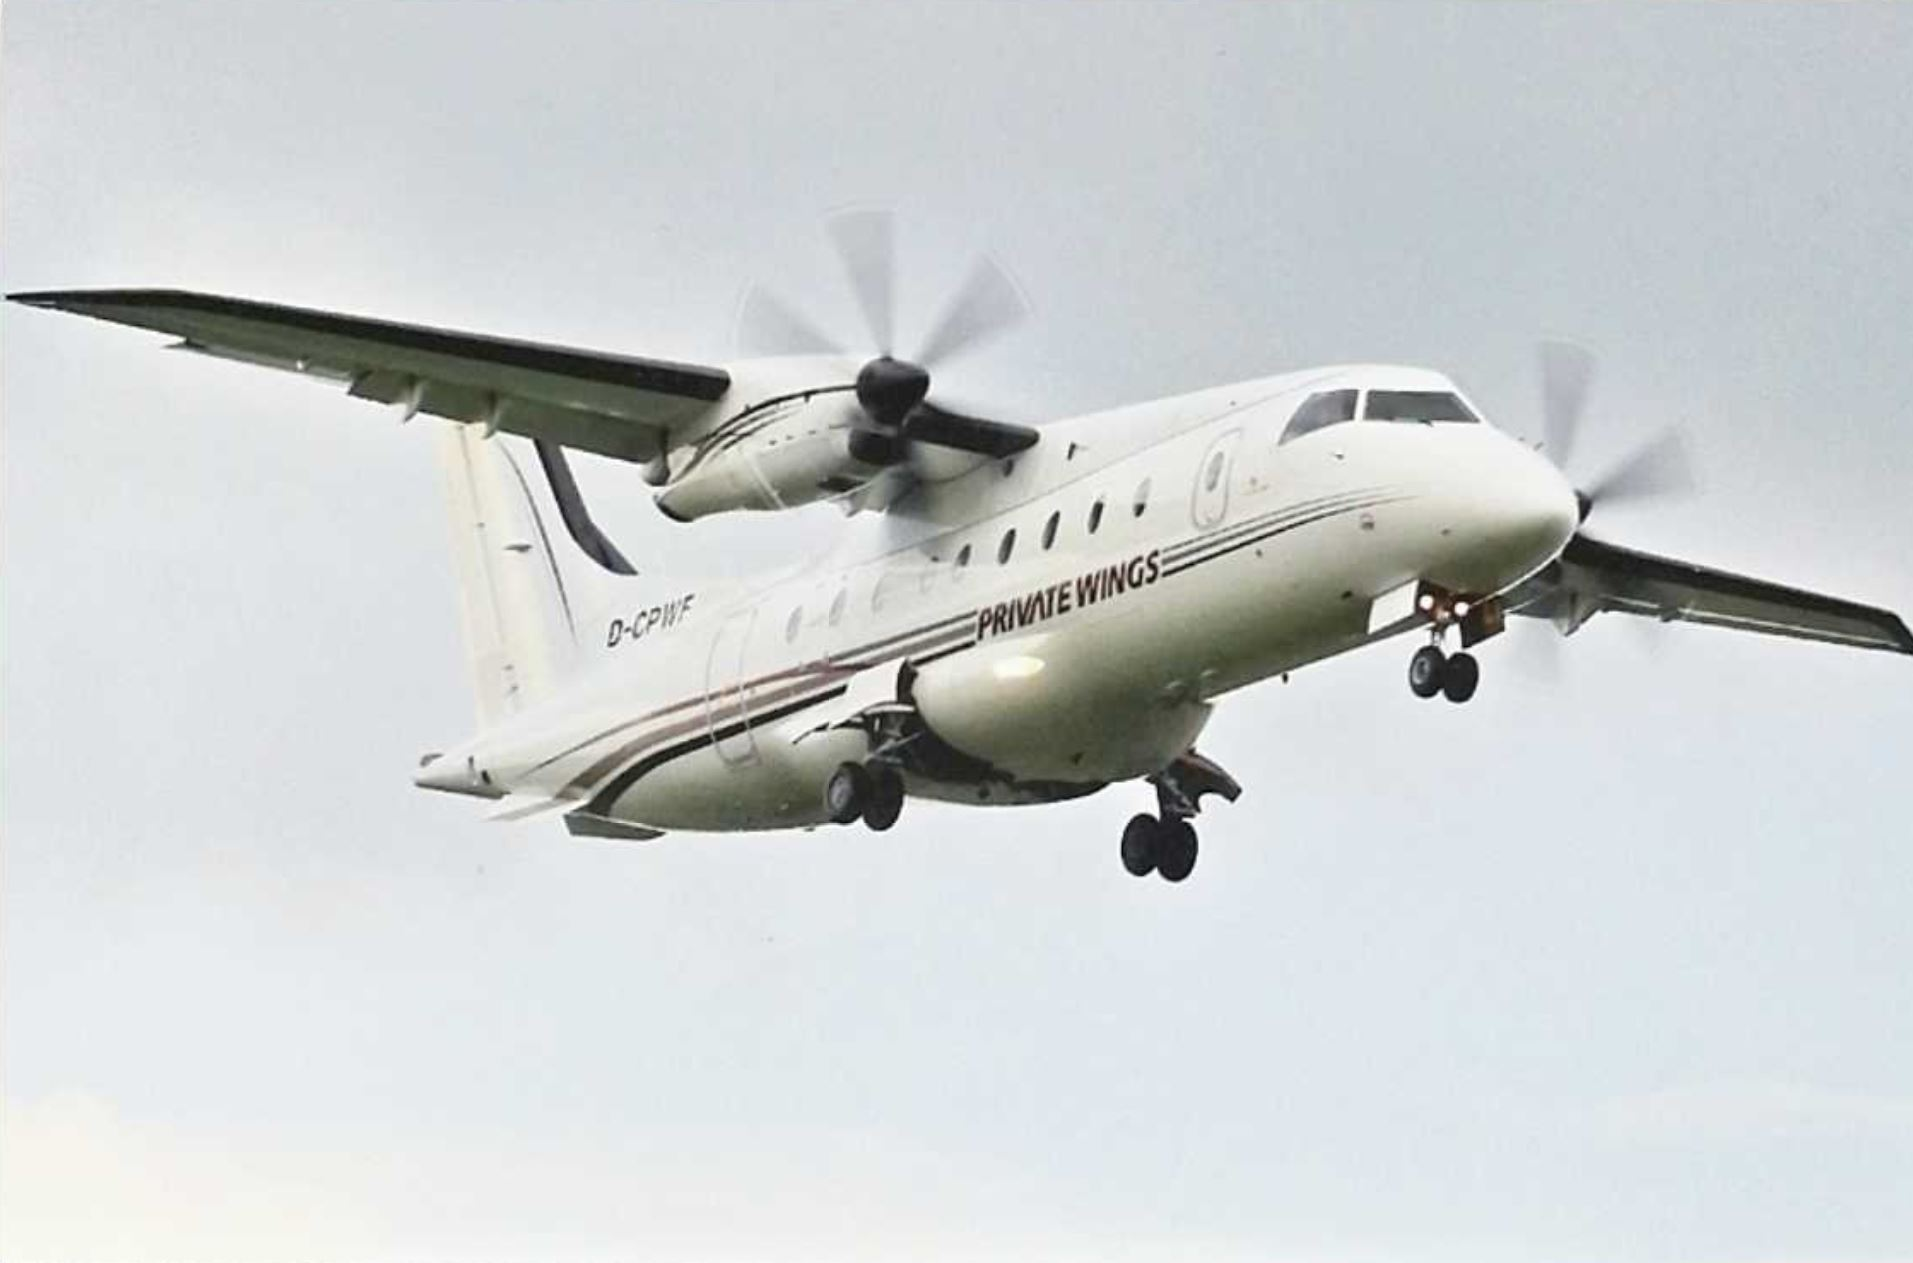 Our first Dornier 328-100 Prop D-CPWF